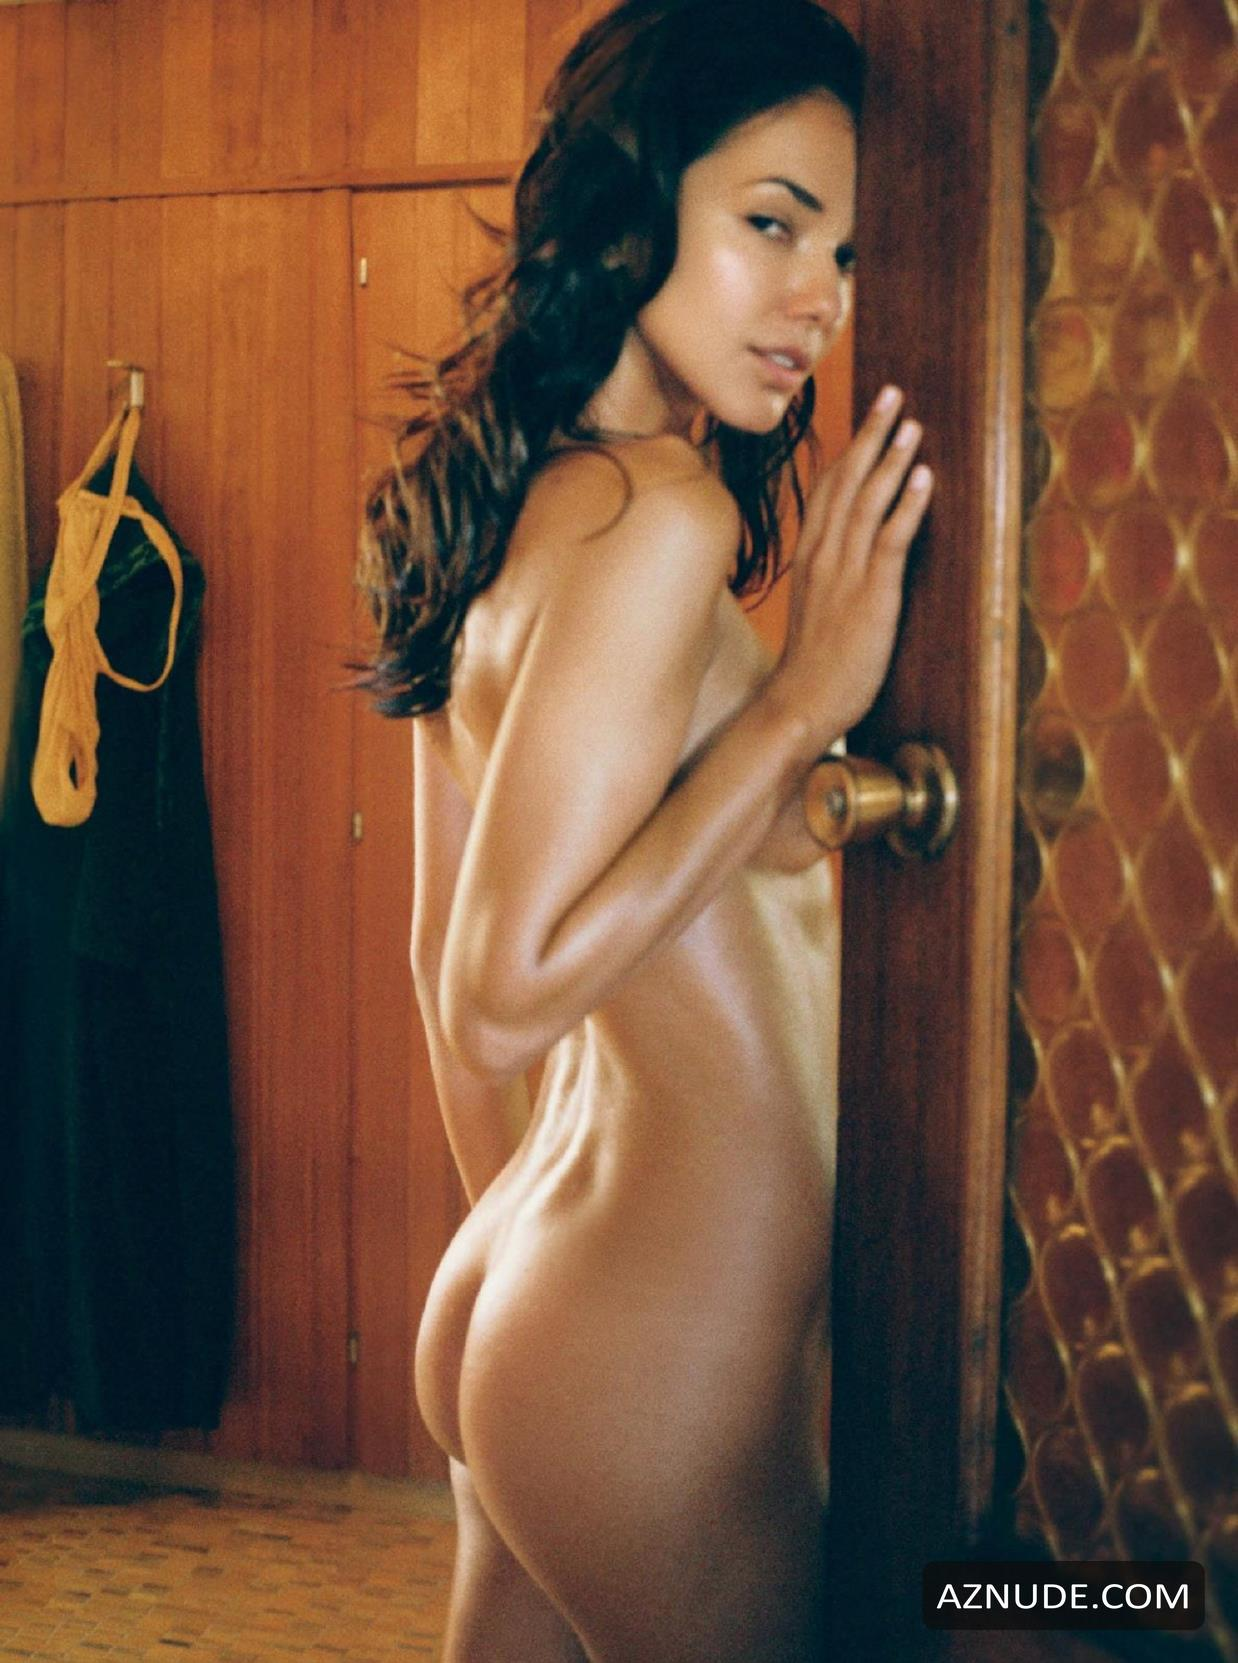 Story Bruna Miranda Nude Photos Featured In The September 2014 Issue Of Playboy Us Magazine 2018